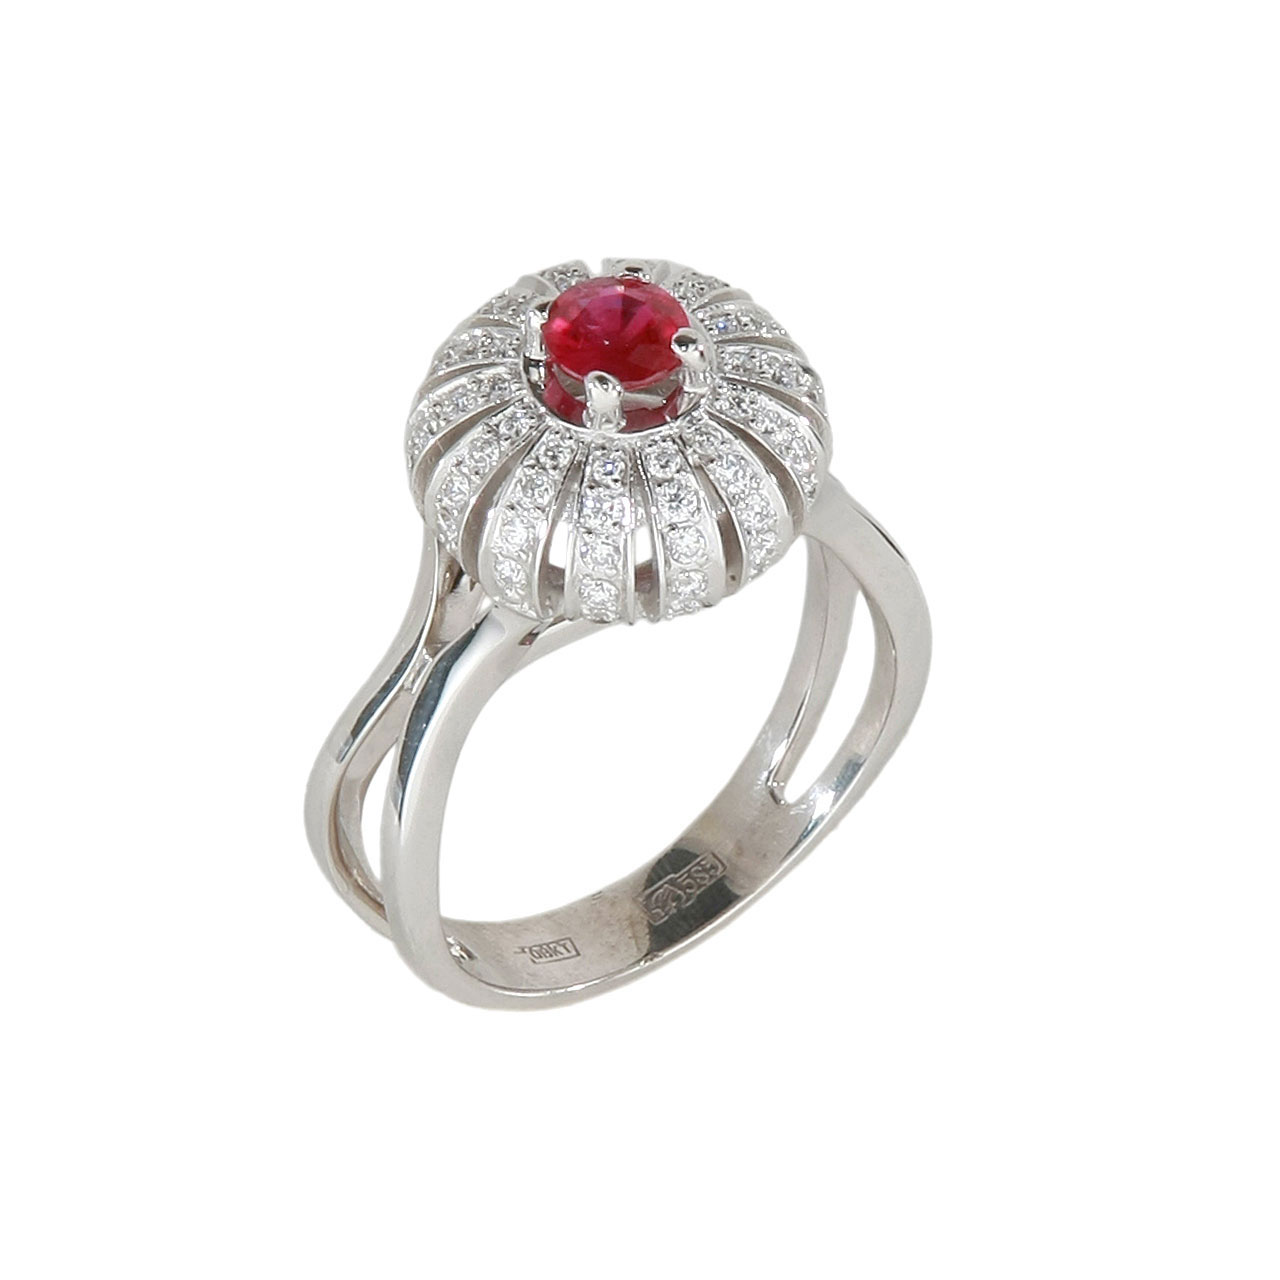 Burmese ruby double-shank ring 1